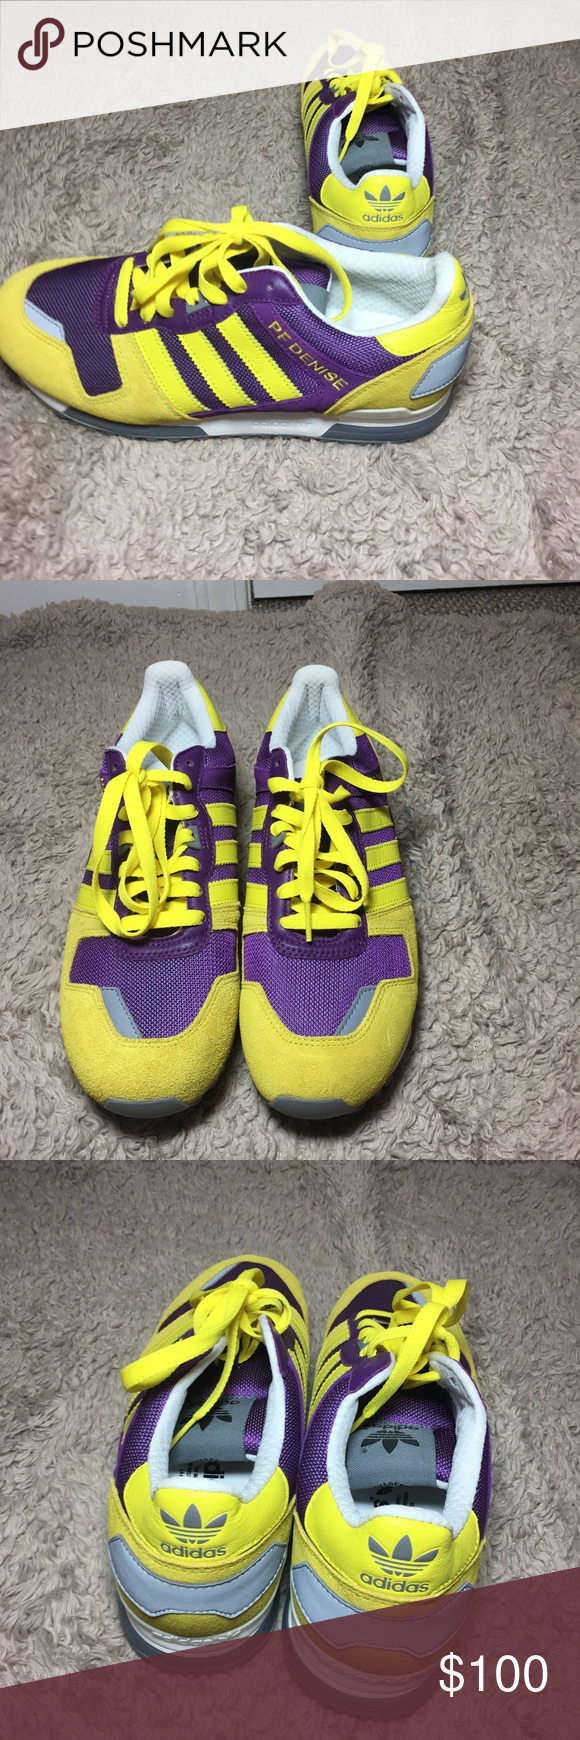 08e40753d56d Brand new without tags adidas sneakers size 9 purple and yellow! These  colors are across each other on the color wheel making them pop! adidas  Shoes ...